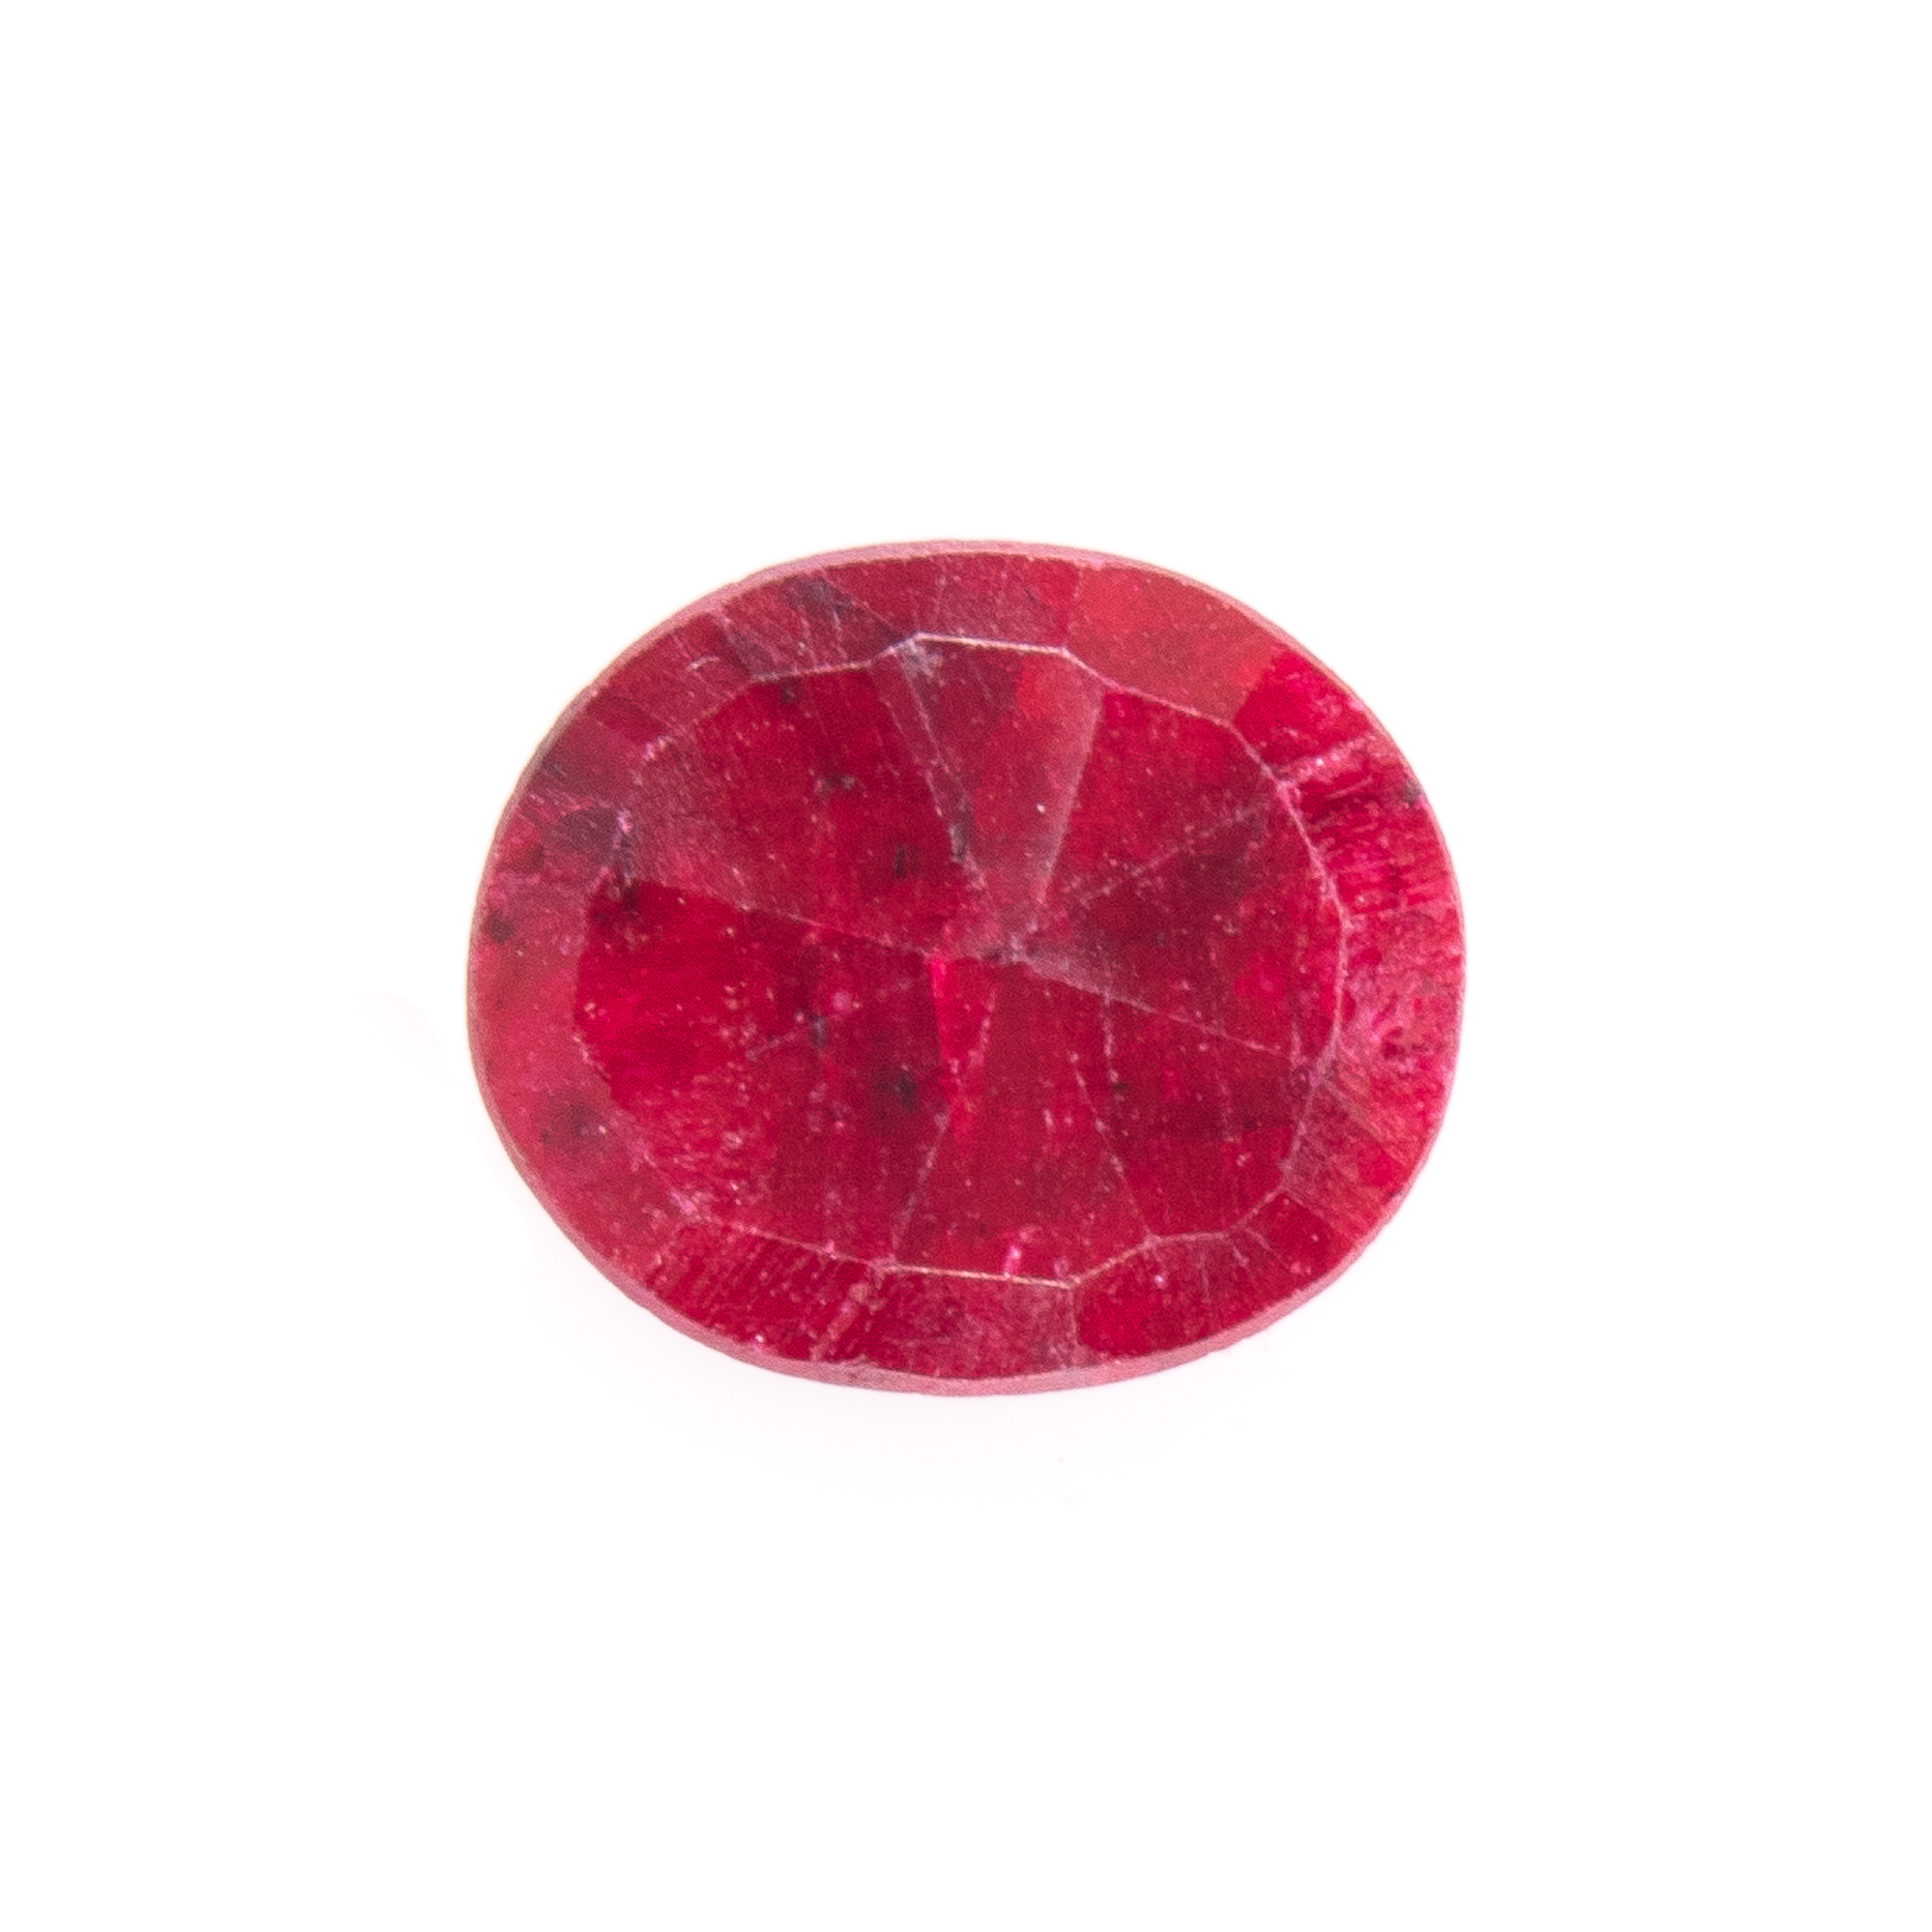 Natural Oval-cut Ruby Gemstone - Image 2 of 6